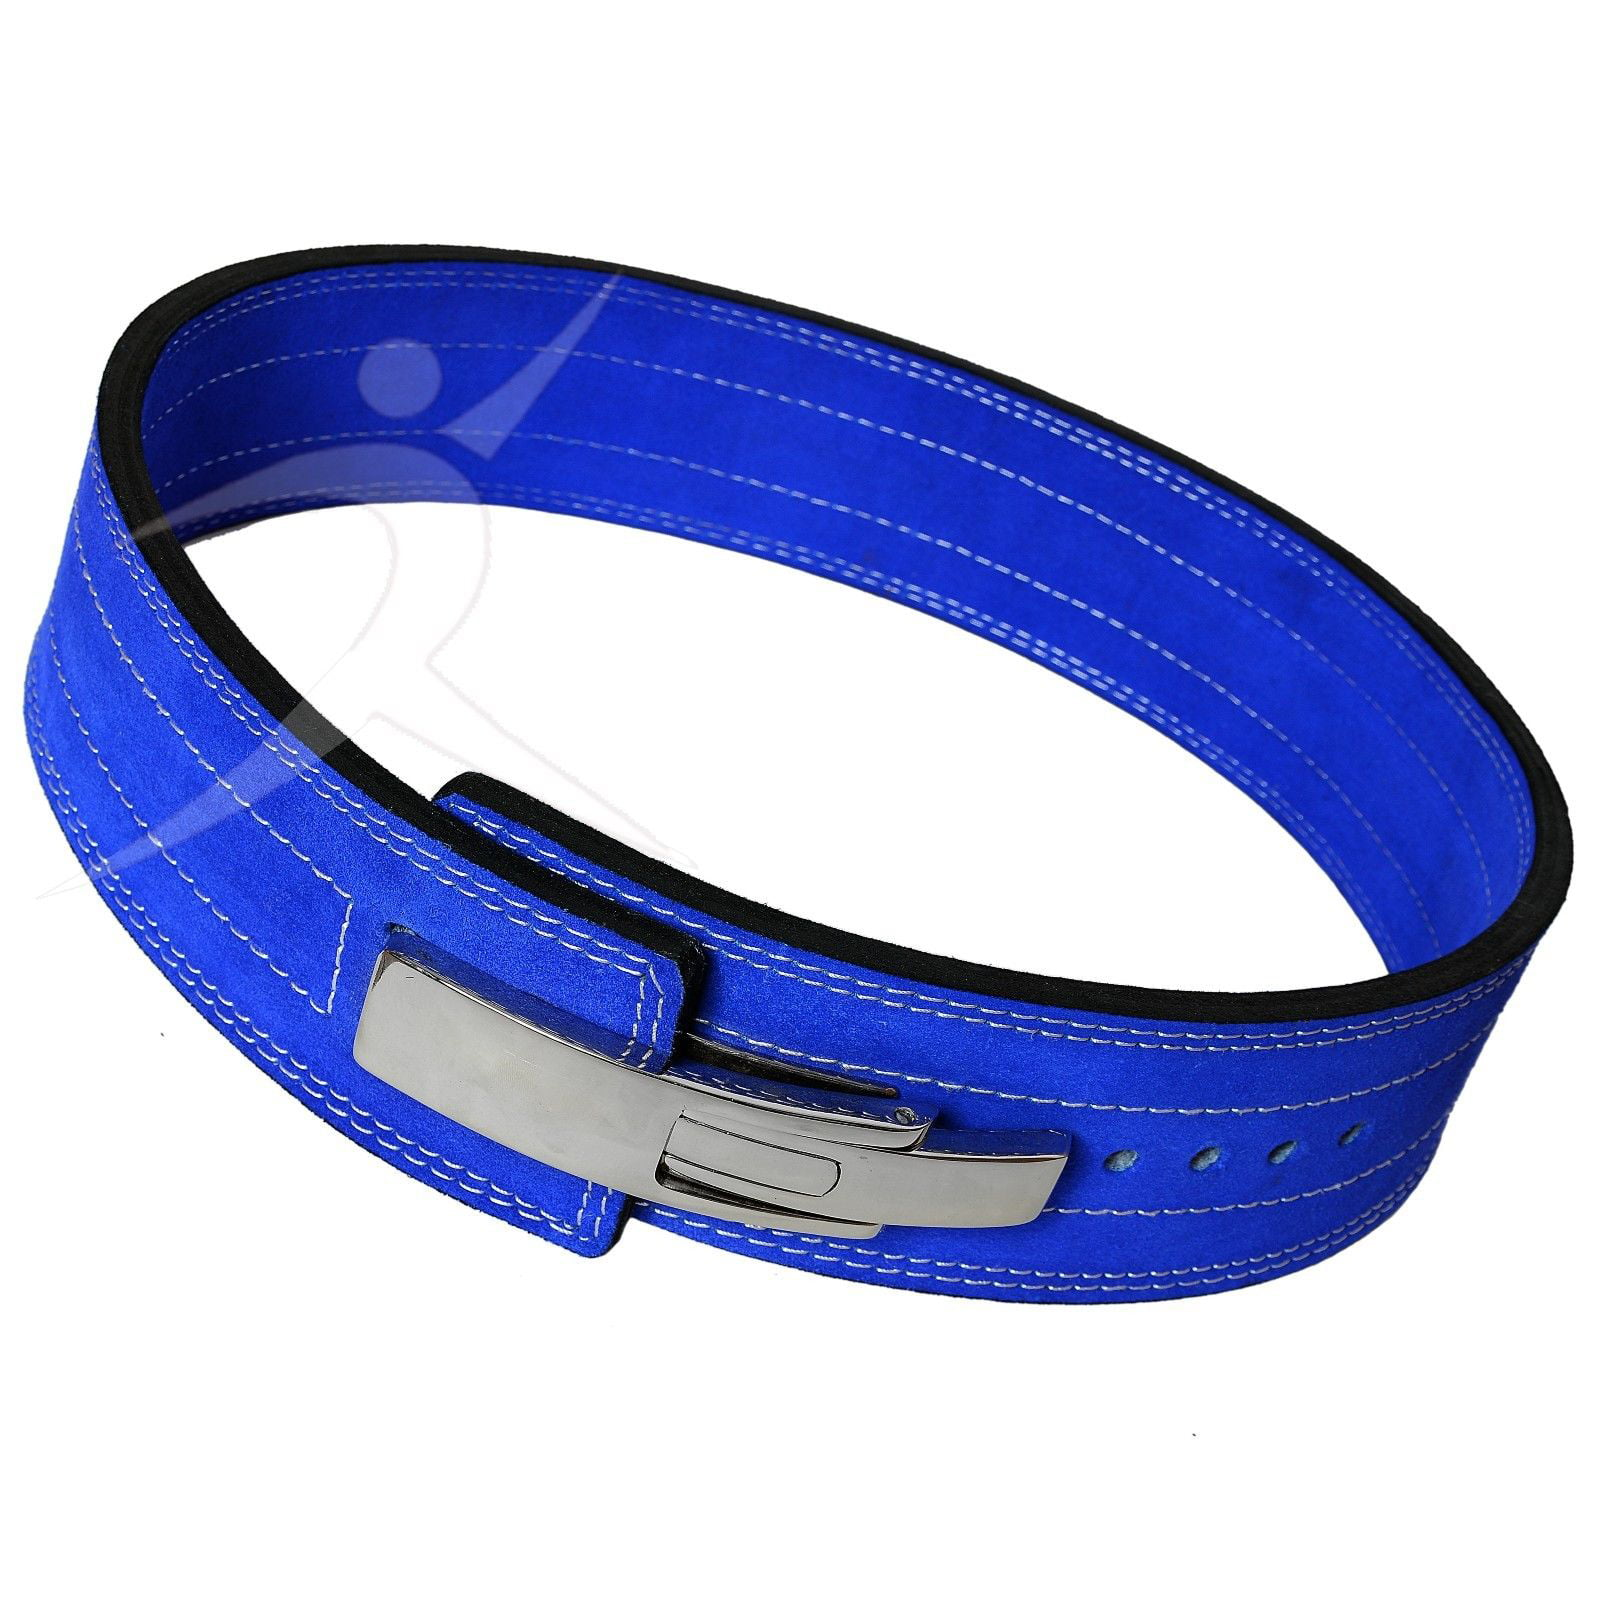 ARD CHAMPS Weight Power Lifting Leather Lever Pro Belt Gym Training Blue Xtra Small by